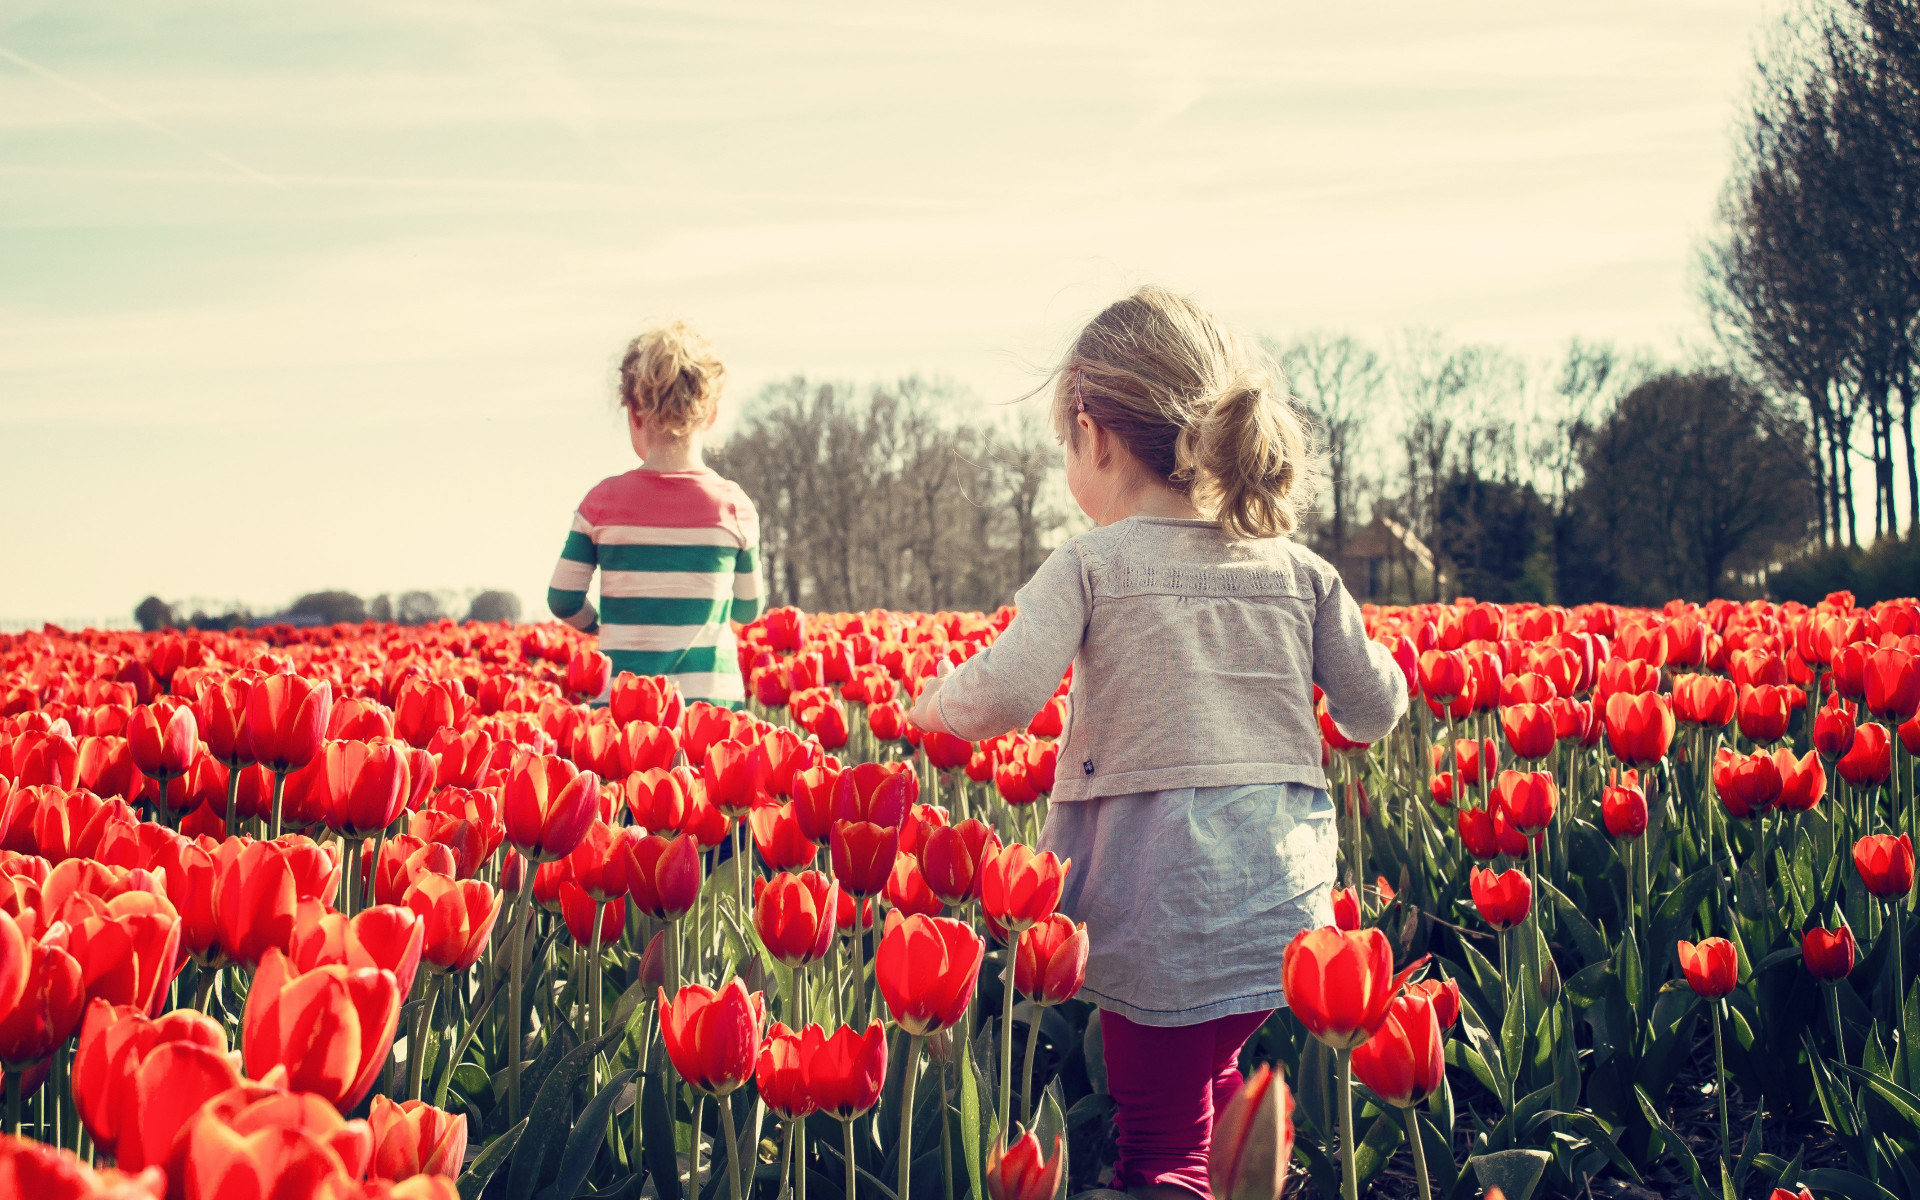 Children in the land with tulips wallpaper 1920x1200